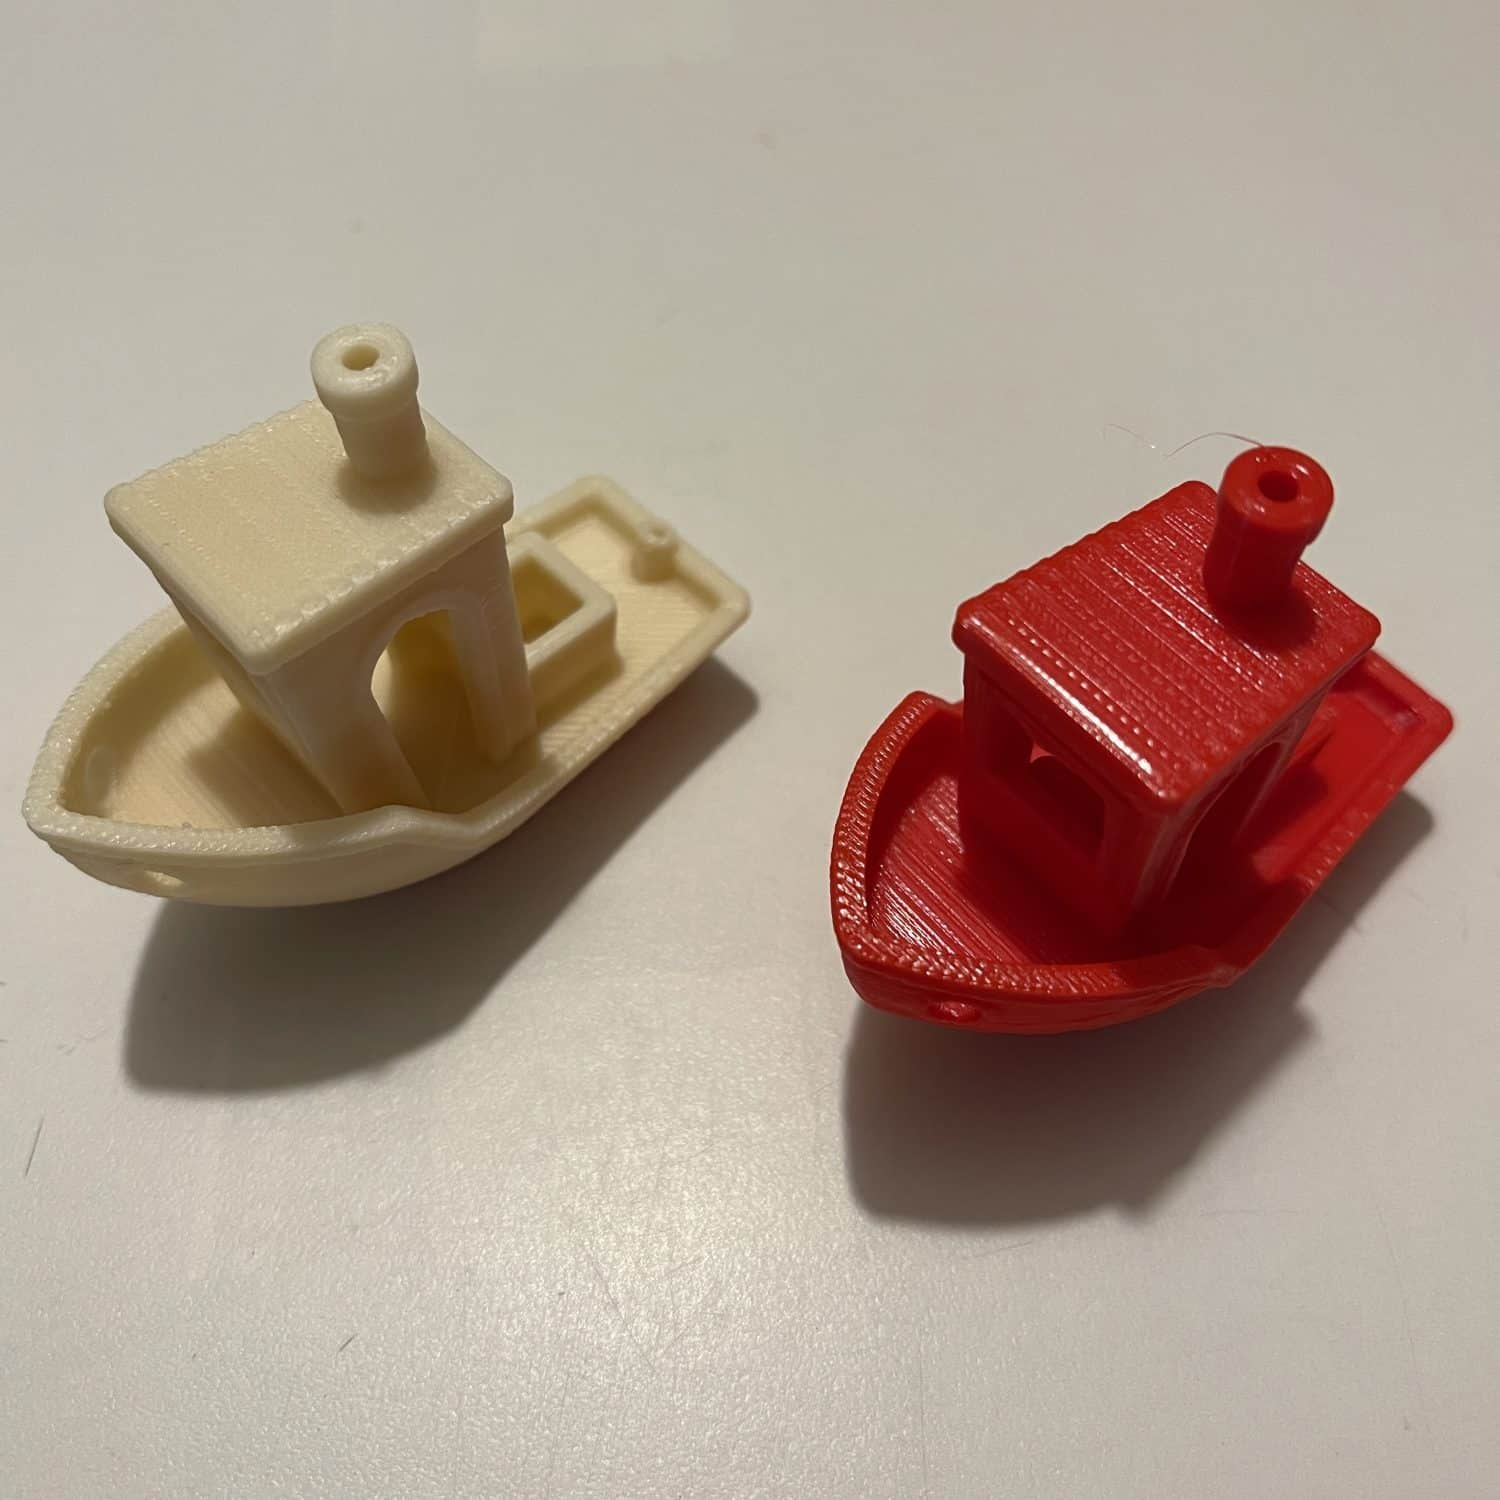 anycubic-vyper-benchy-dessus